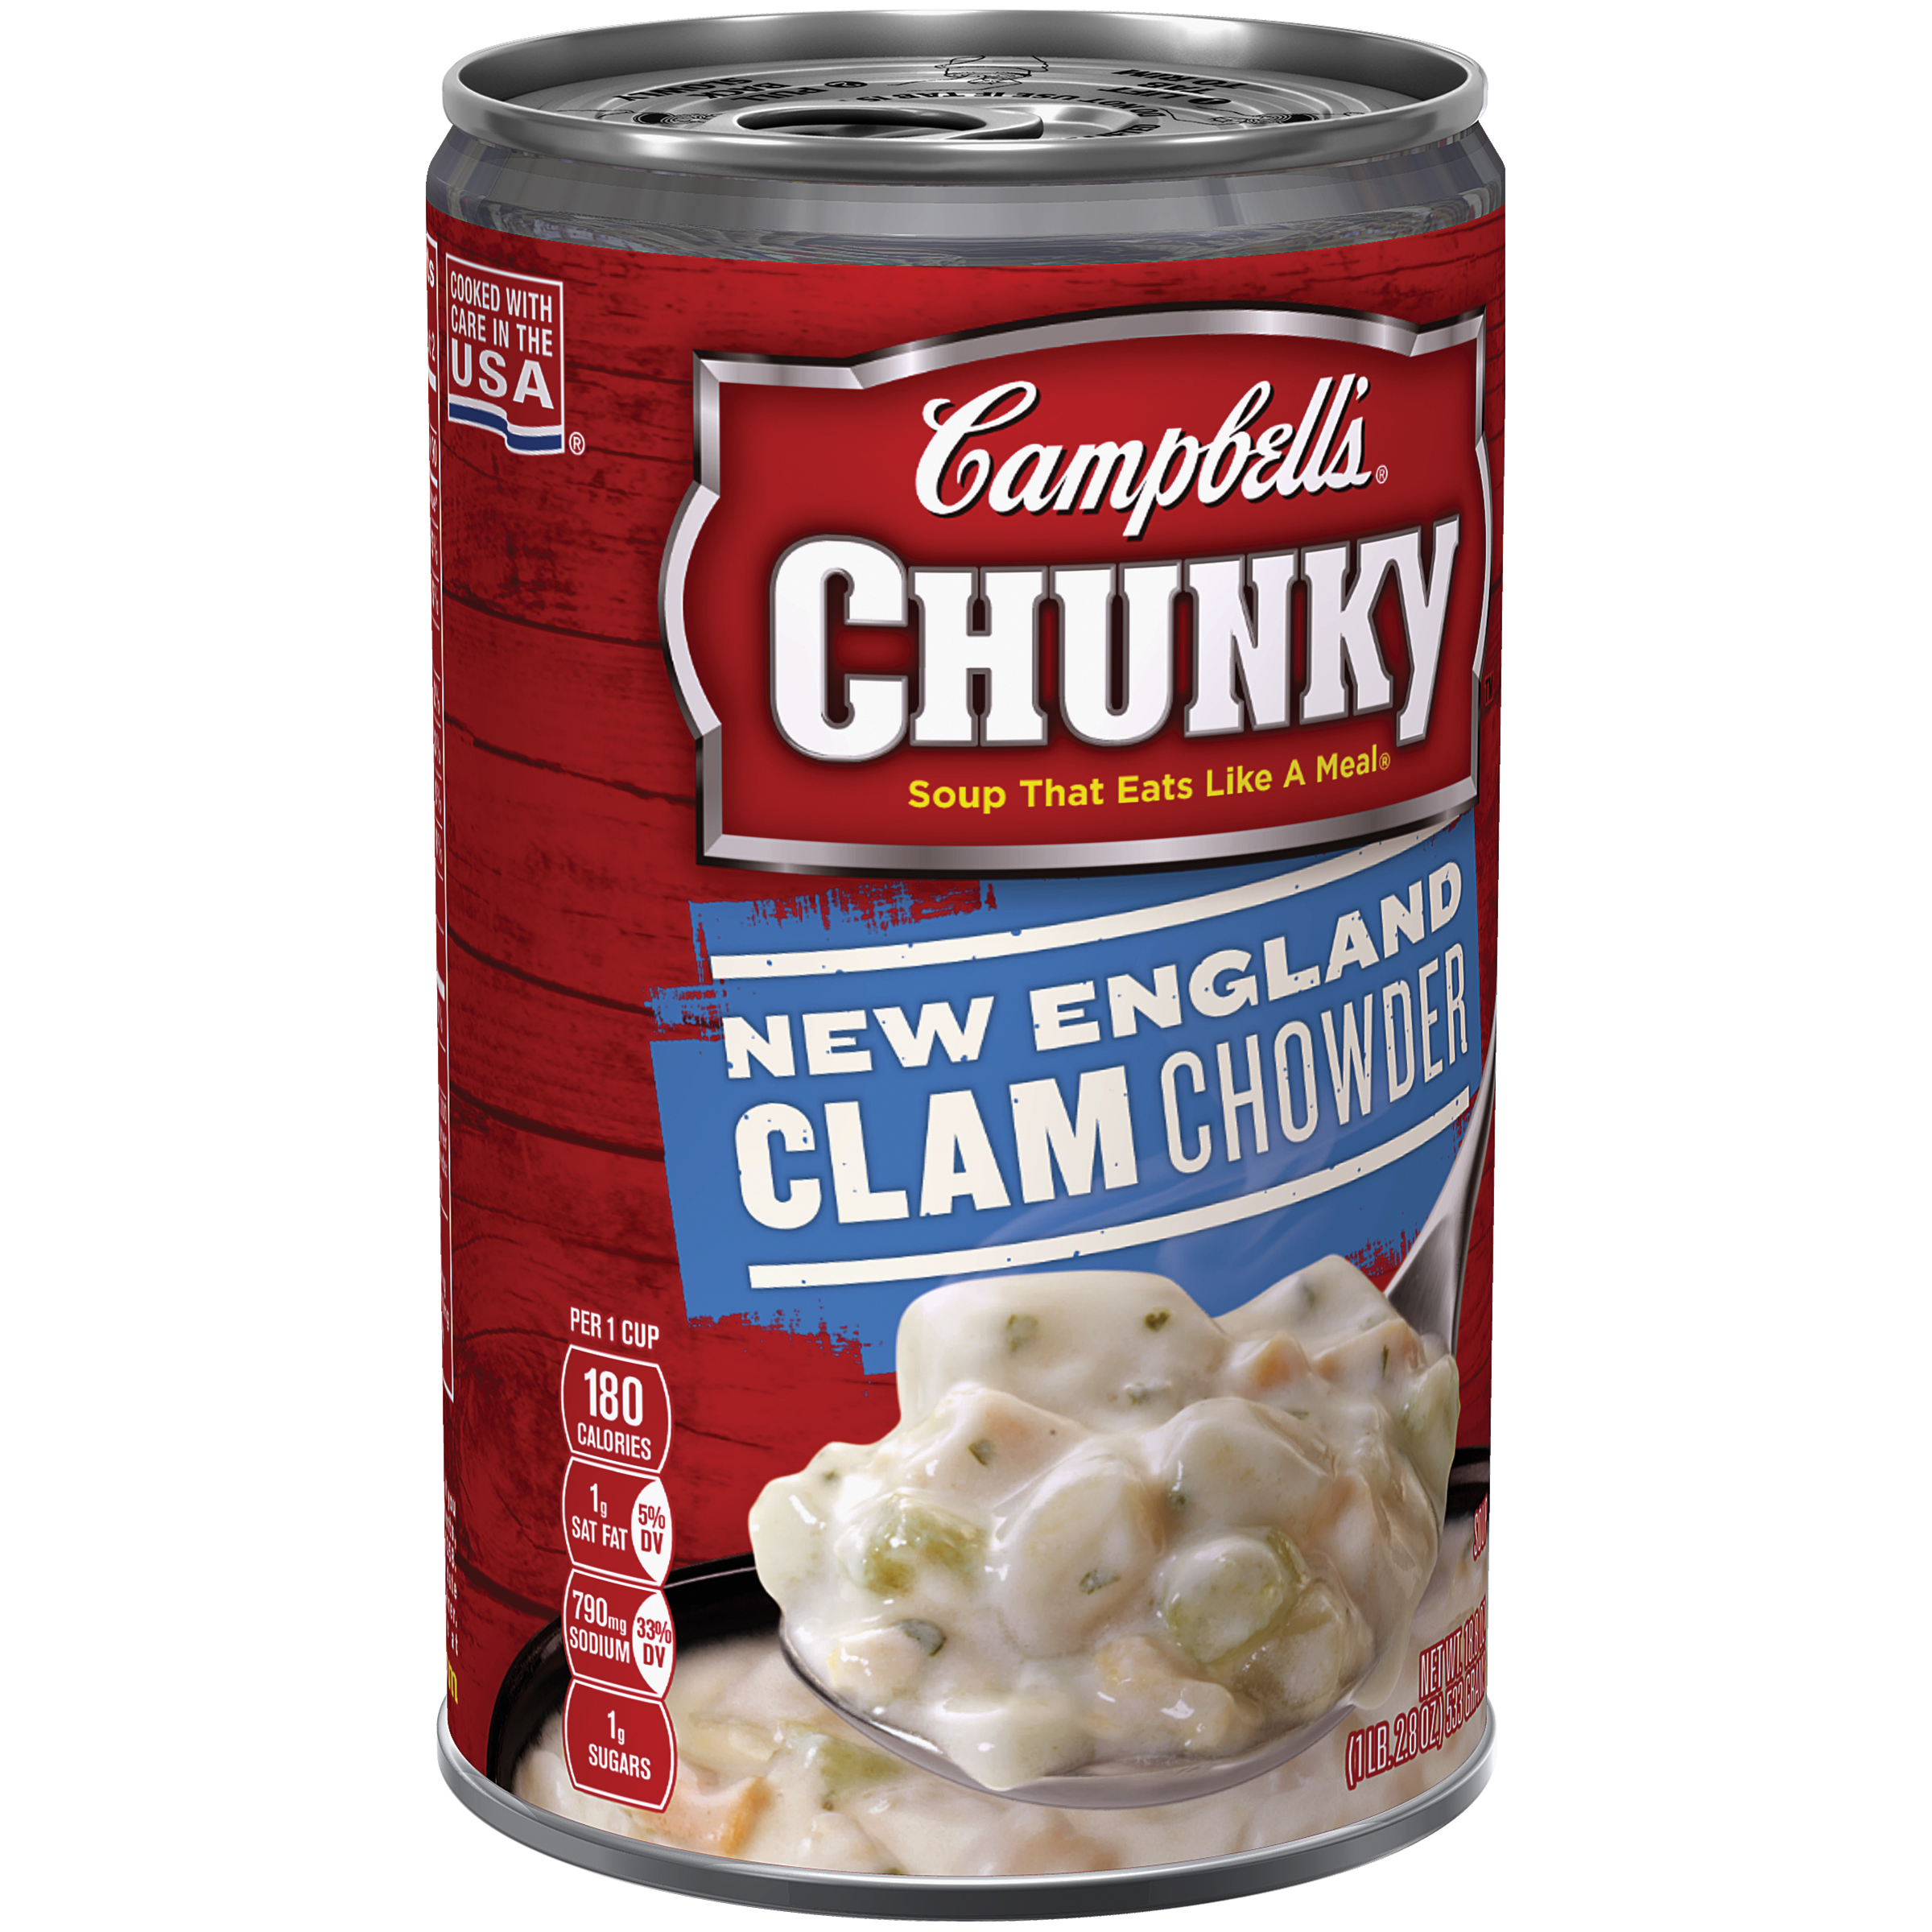 Campbell's Chunky New England Clam Chowder Soup 18.8oz